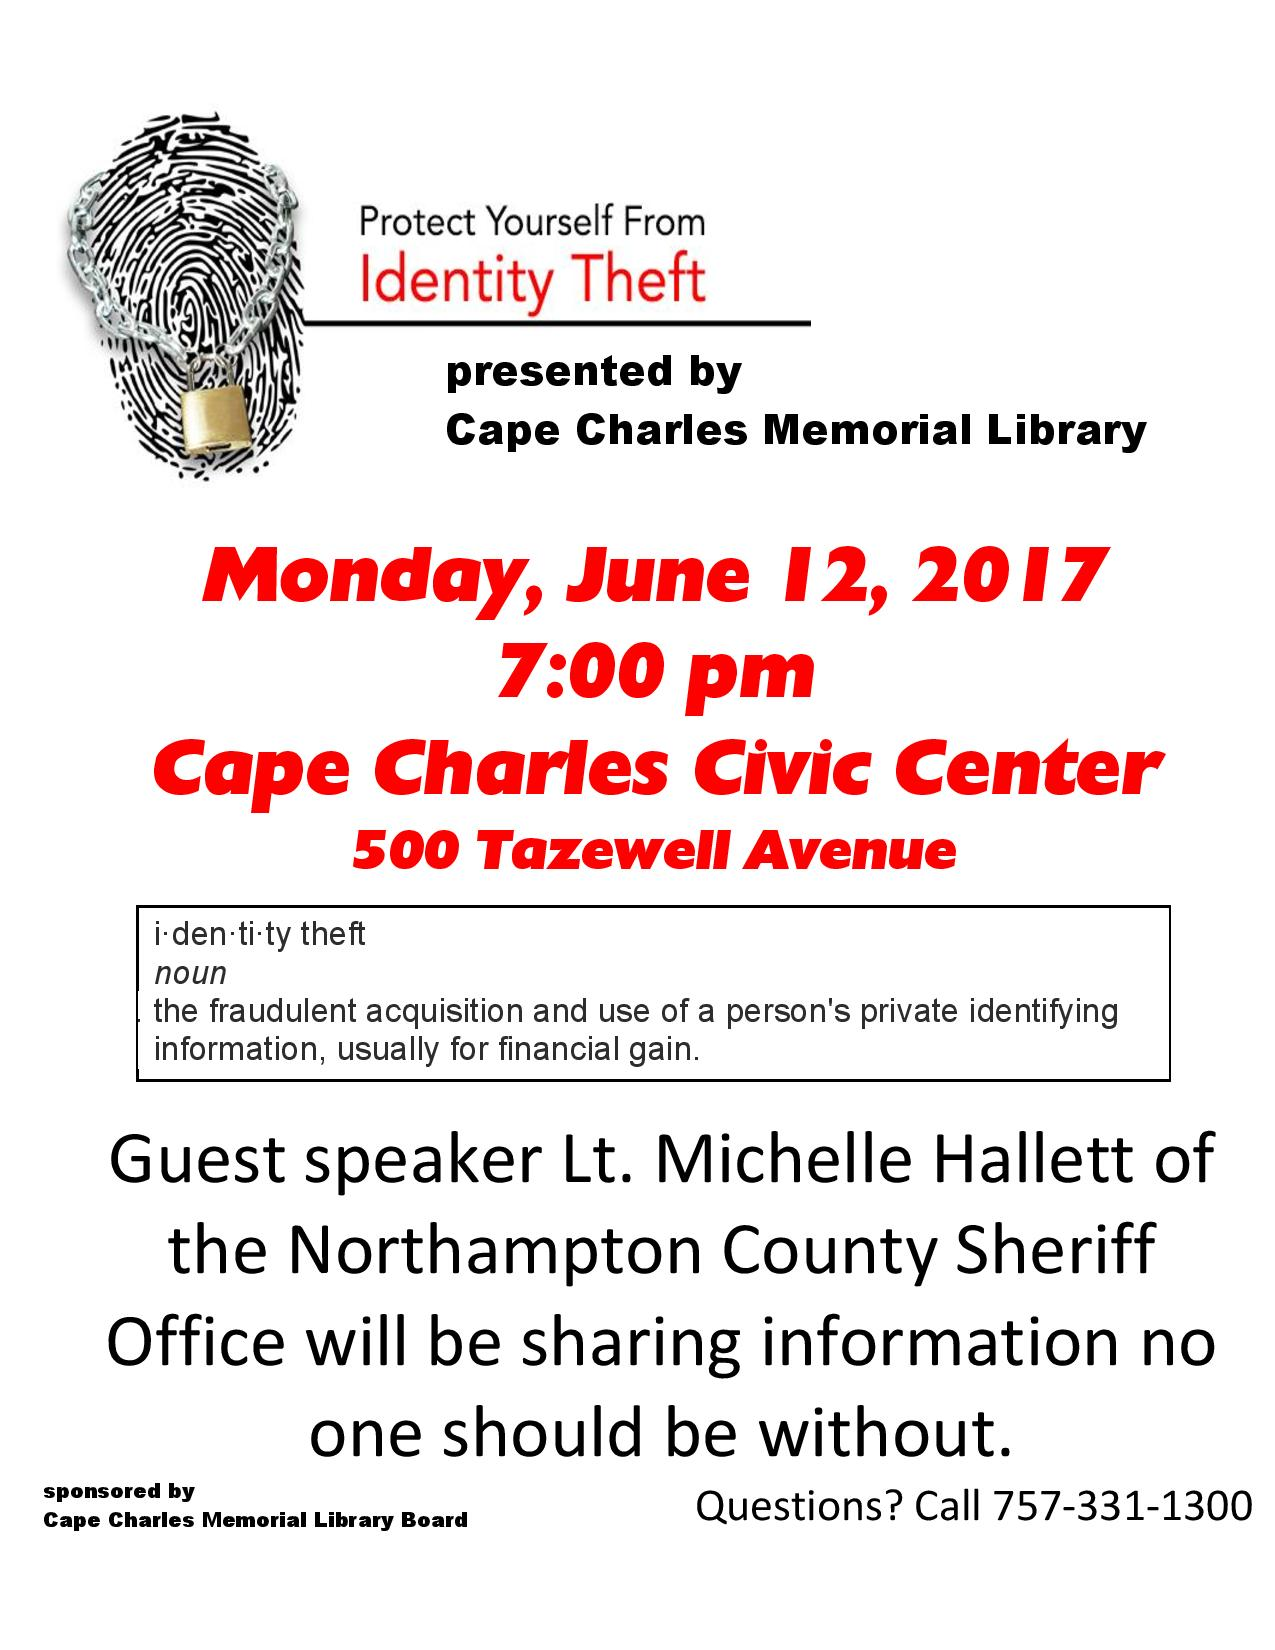 Identity Theft presentation - Friends of CCML @ Cape Charles Civic Center | Cape Charles | Virginia | United States